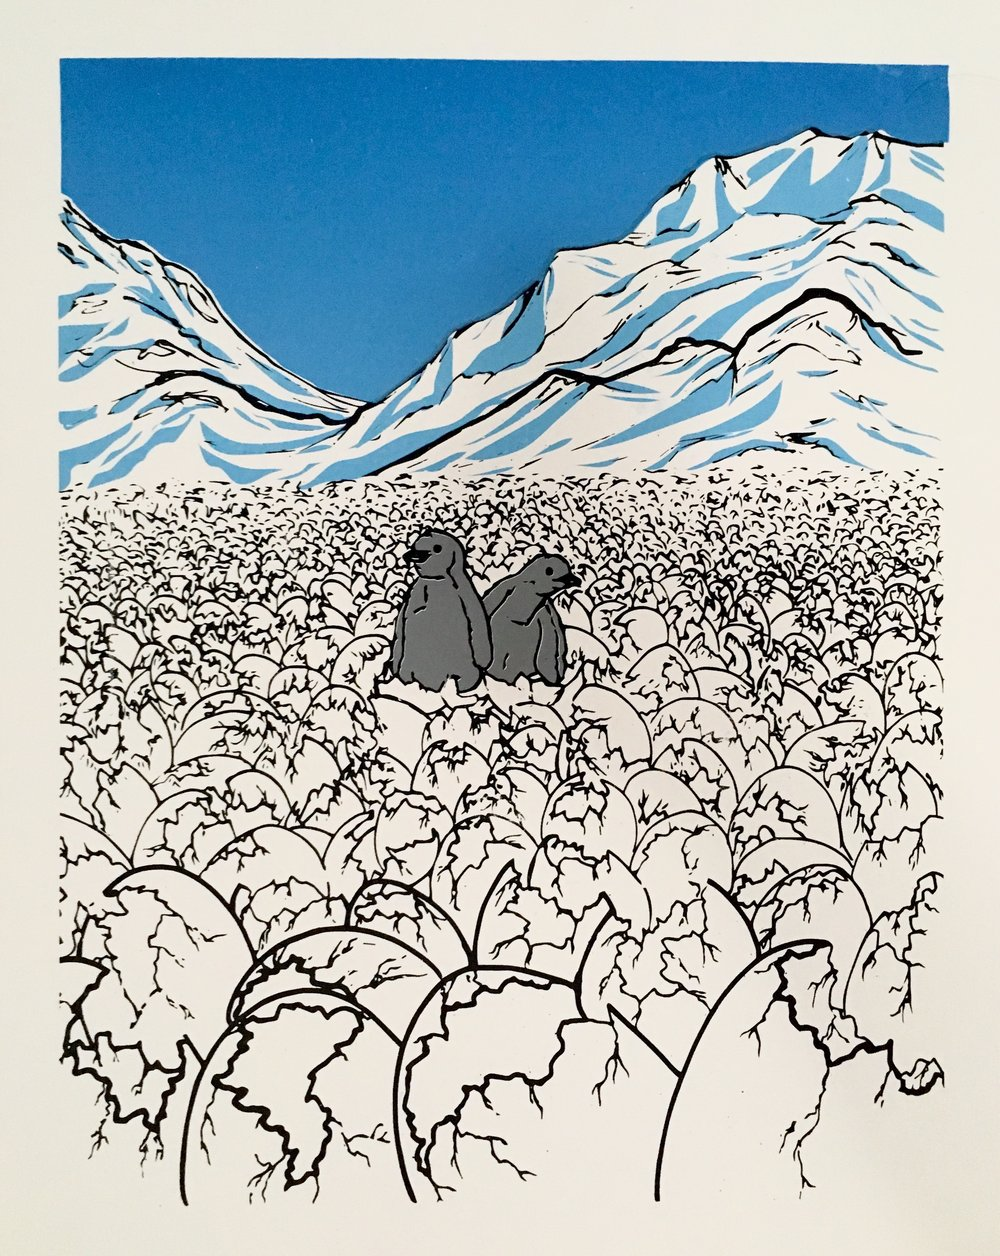 And then there were too  by Yeisy Rodriguez is a four- color screen print based on news that emerged in late 2017 about the thousands of Adélie penguin chicks that died of starvation.